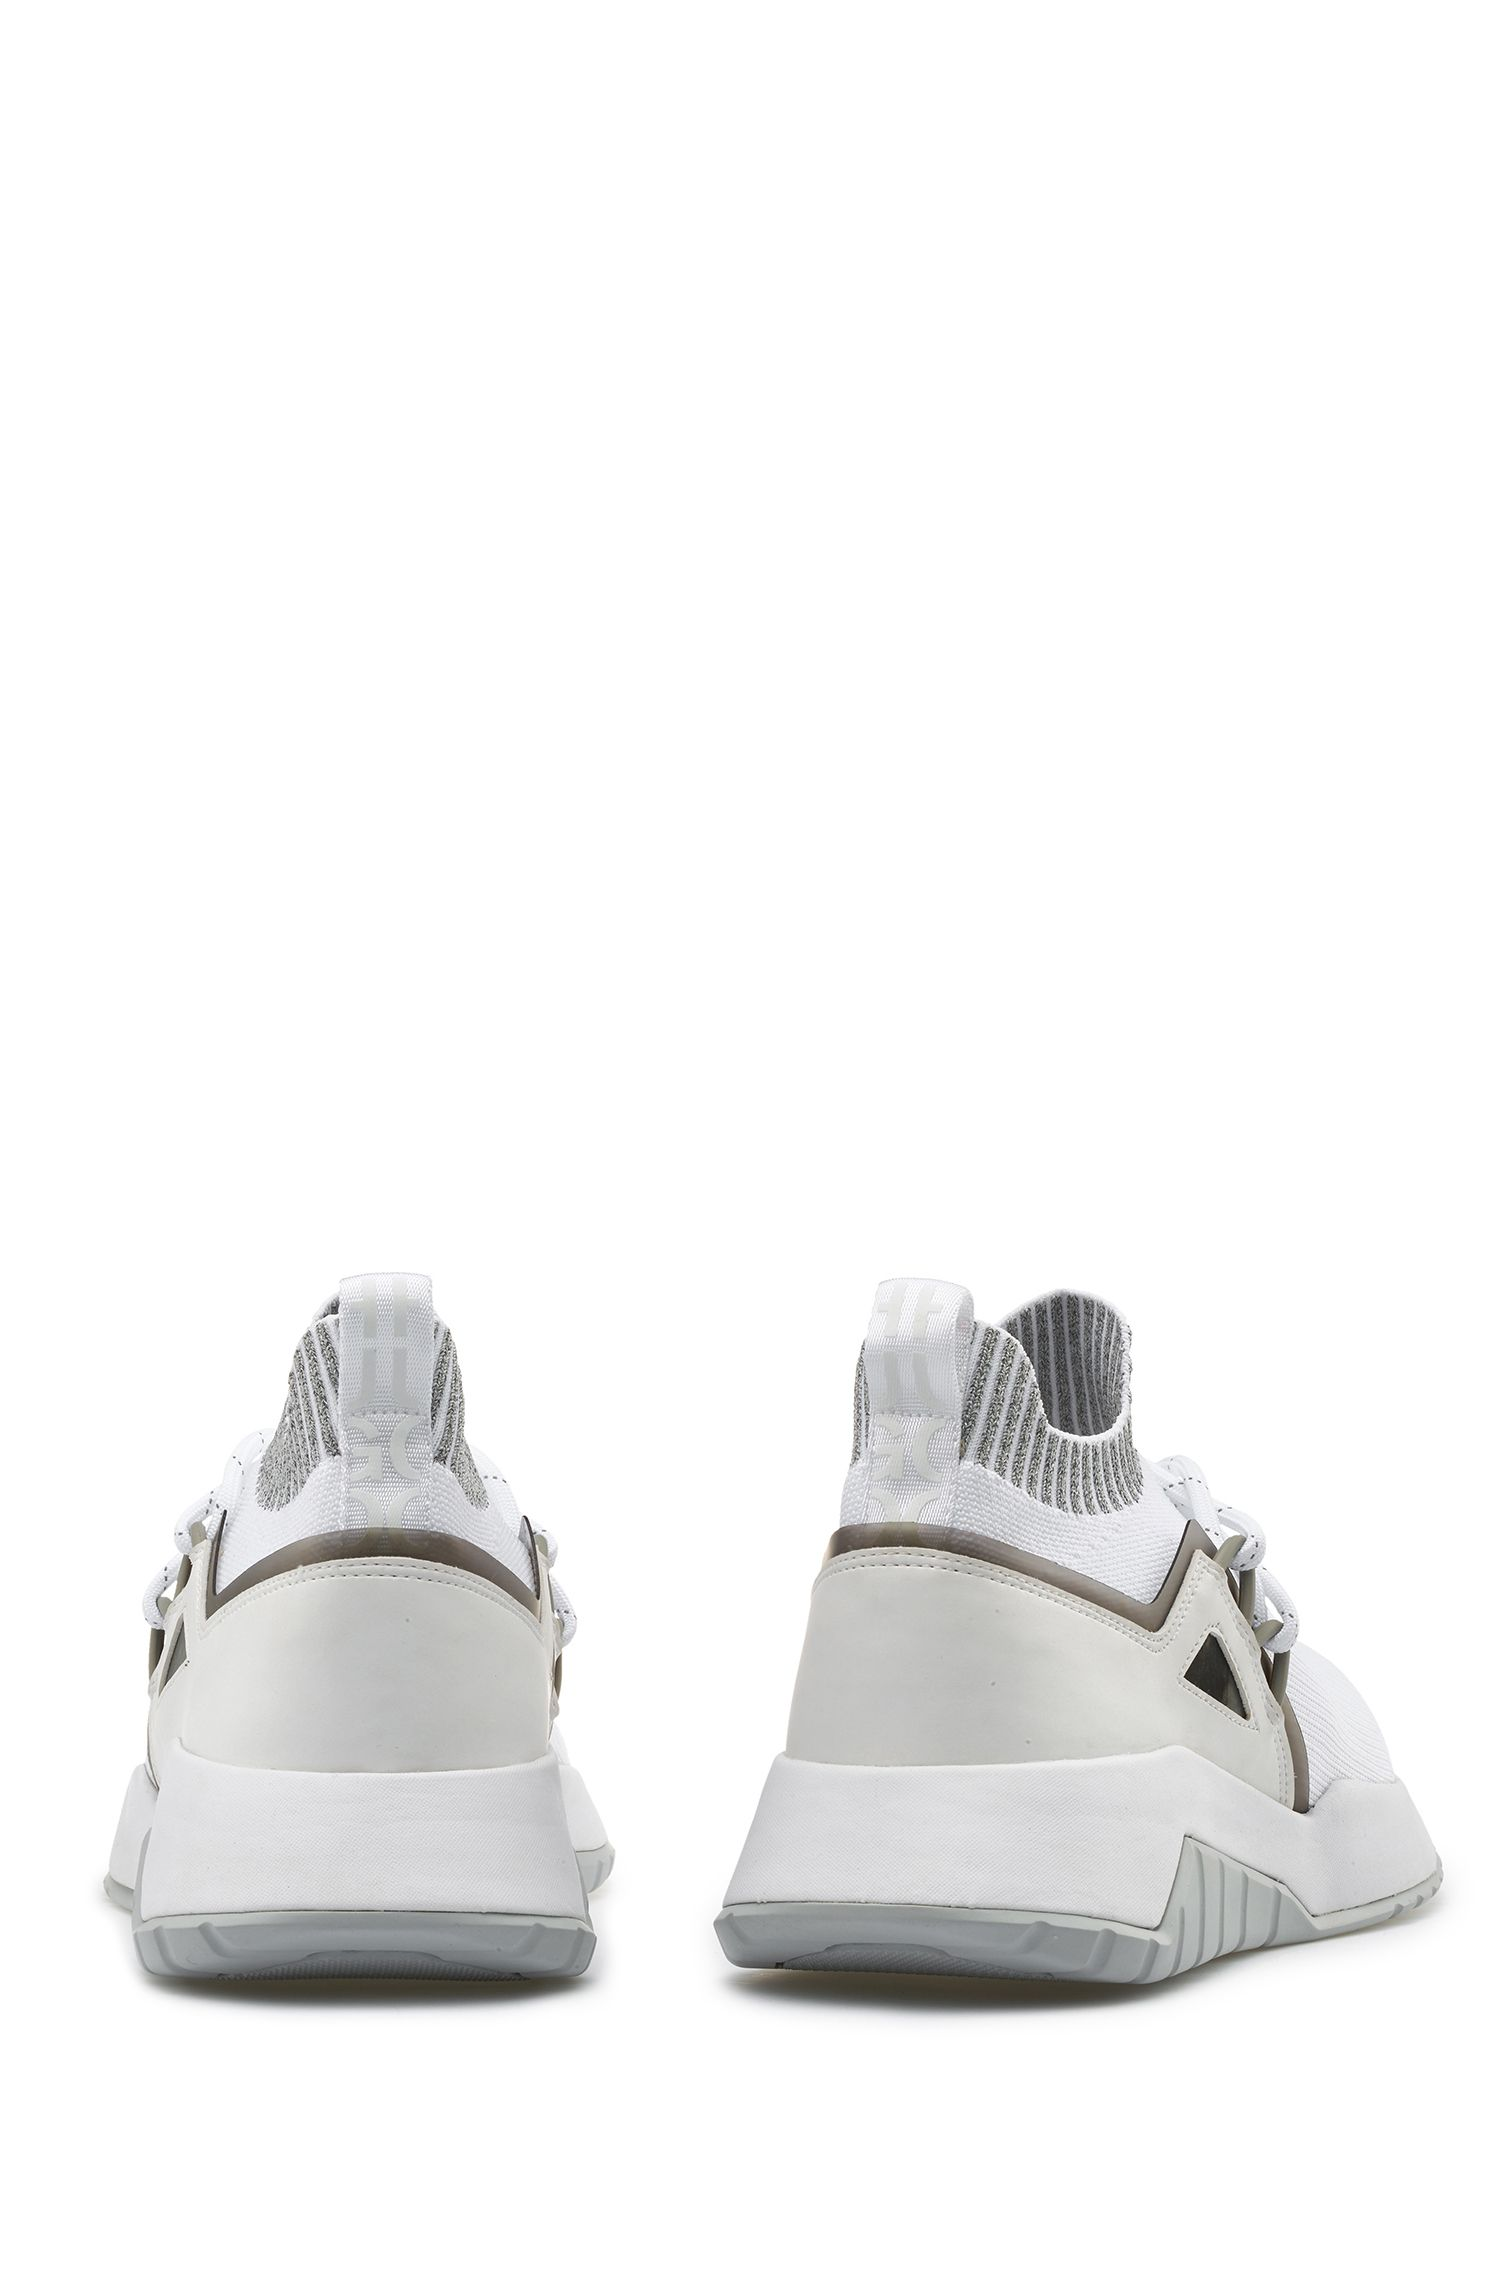 Reflective-logo trainers with knitted sock, White